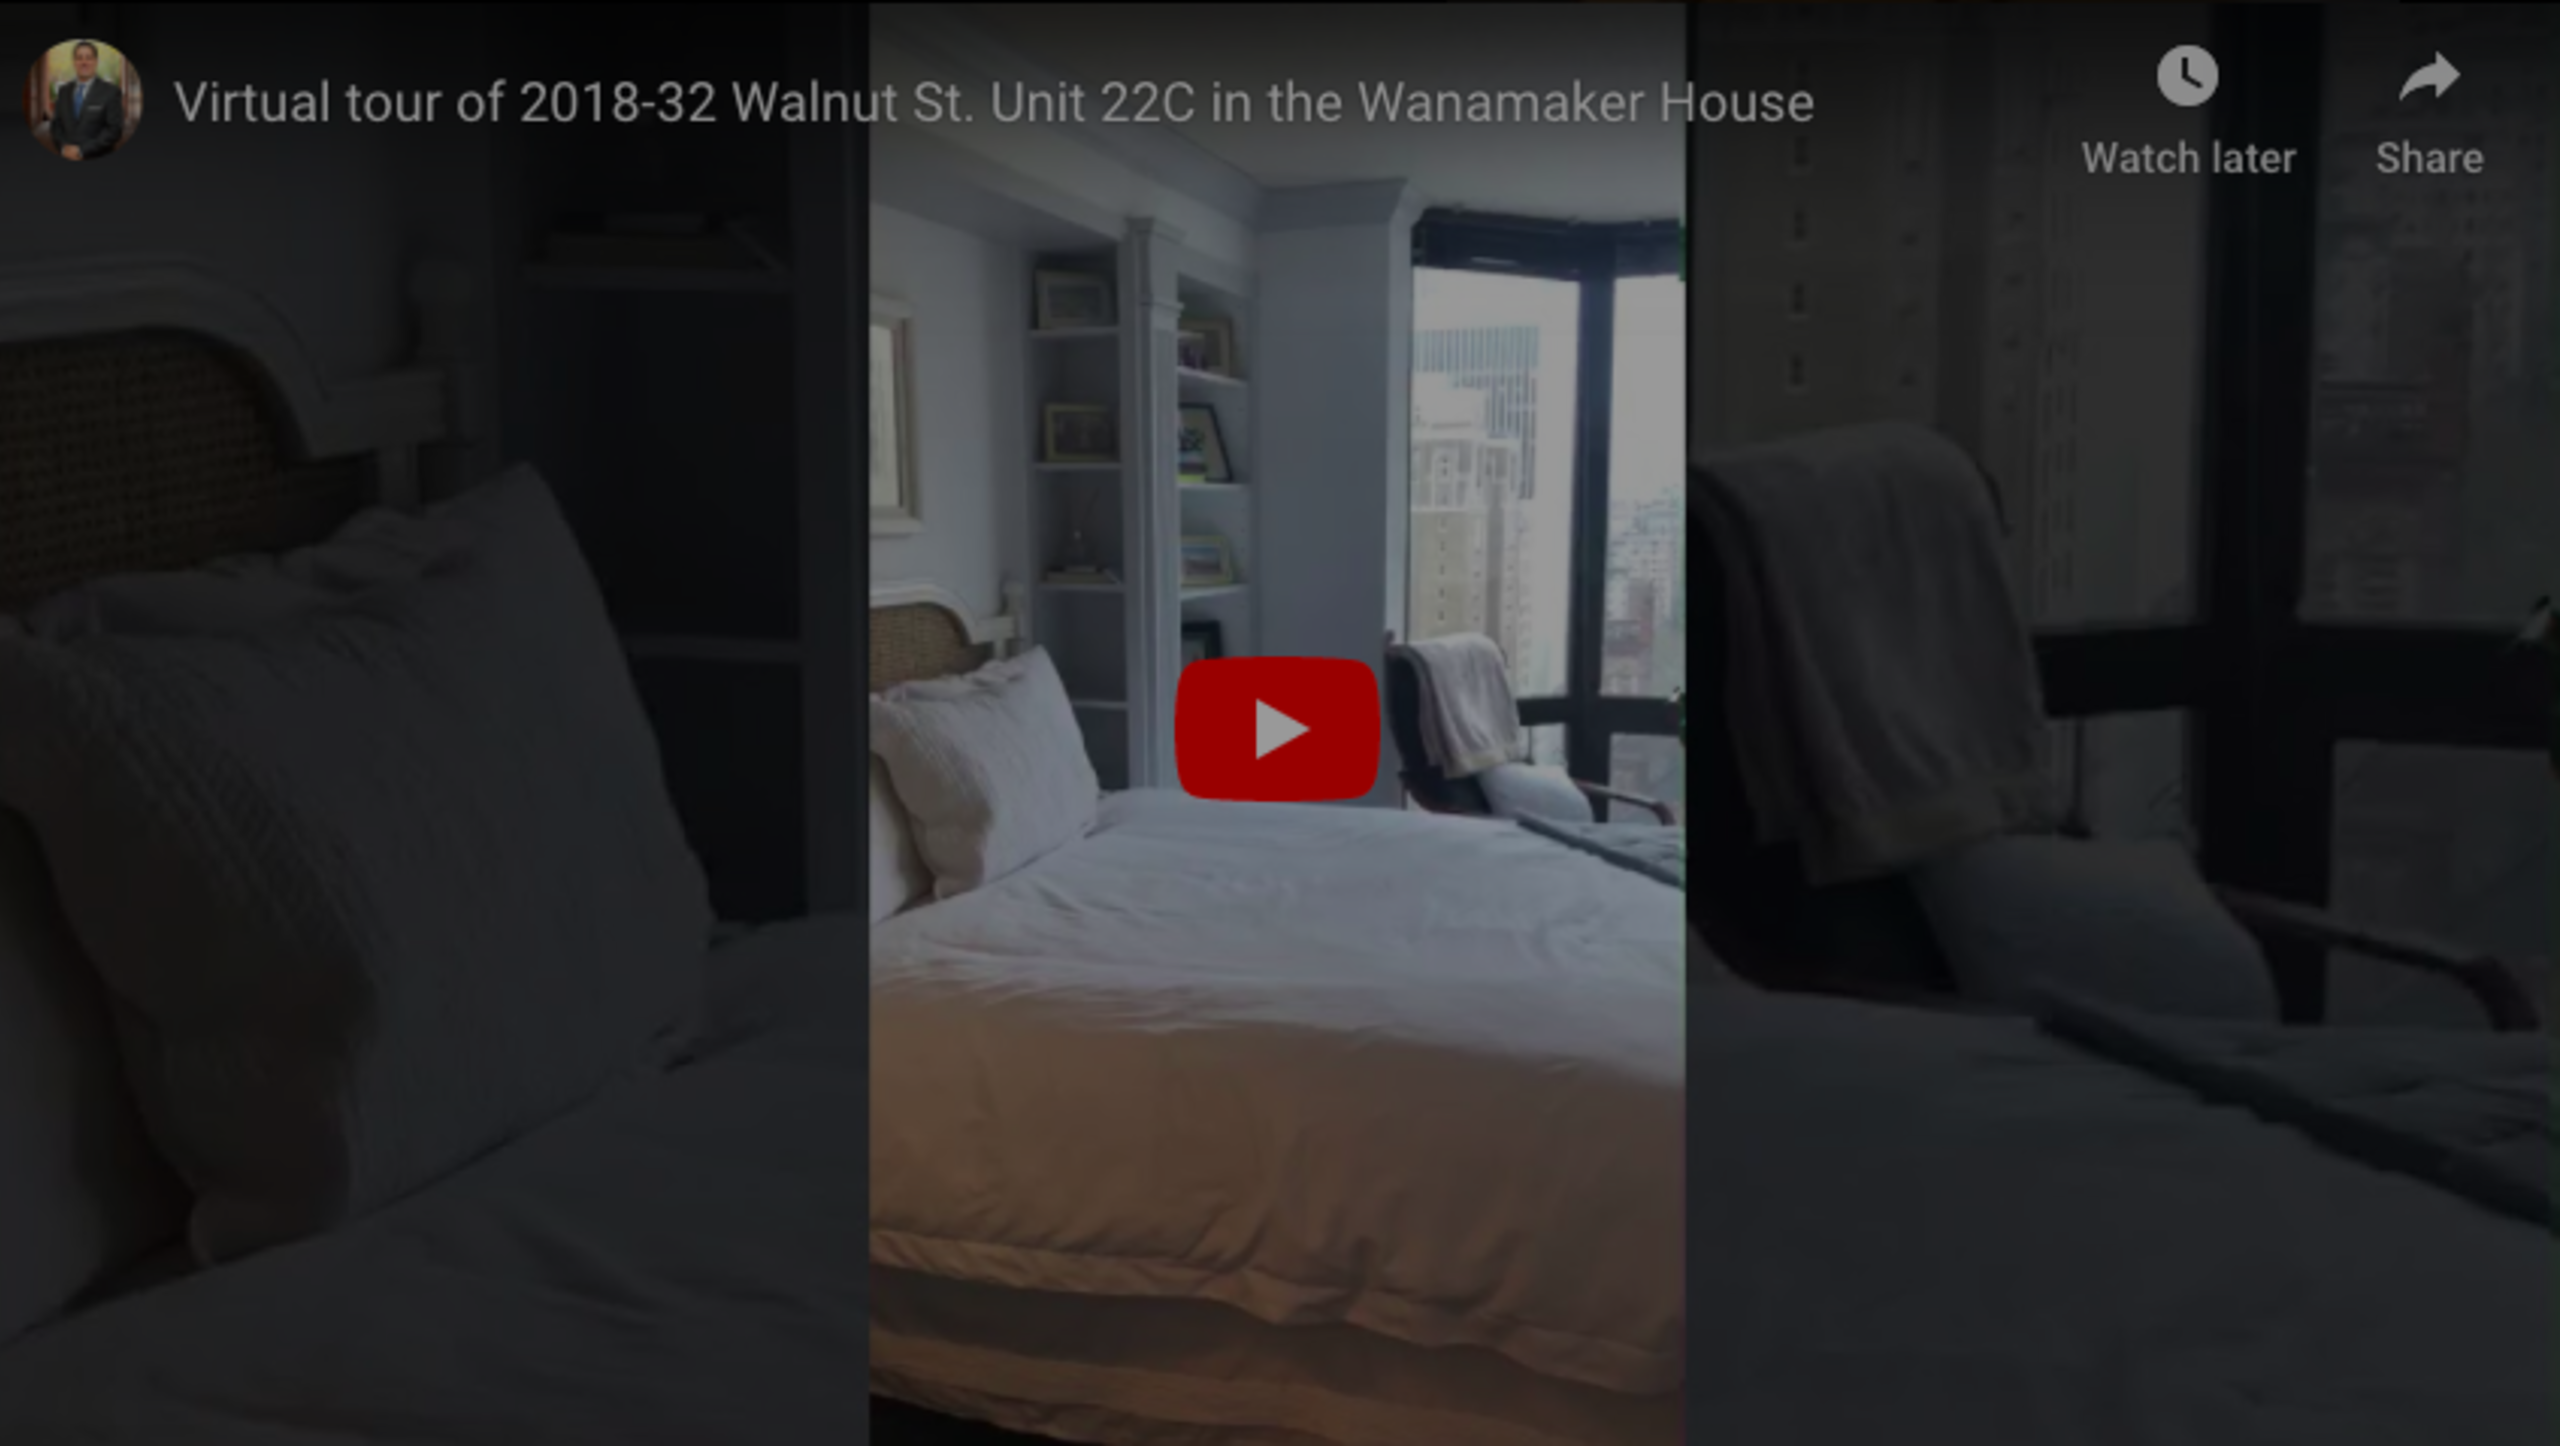 Virtual tour of 2018-32 Walnut St. Unit 22C in the Wanamaker House